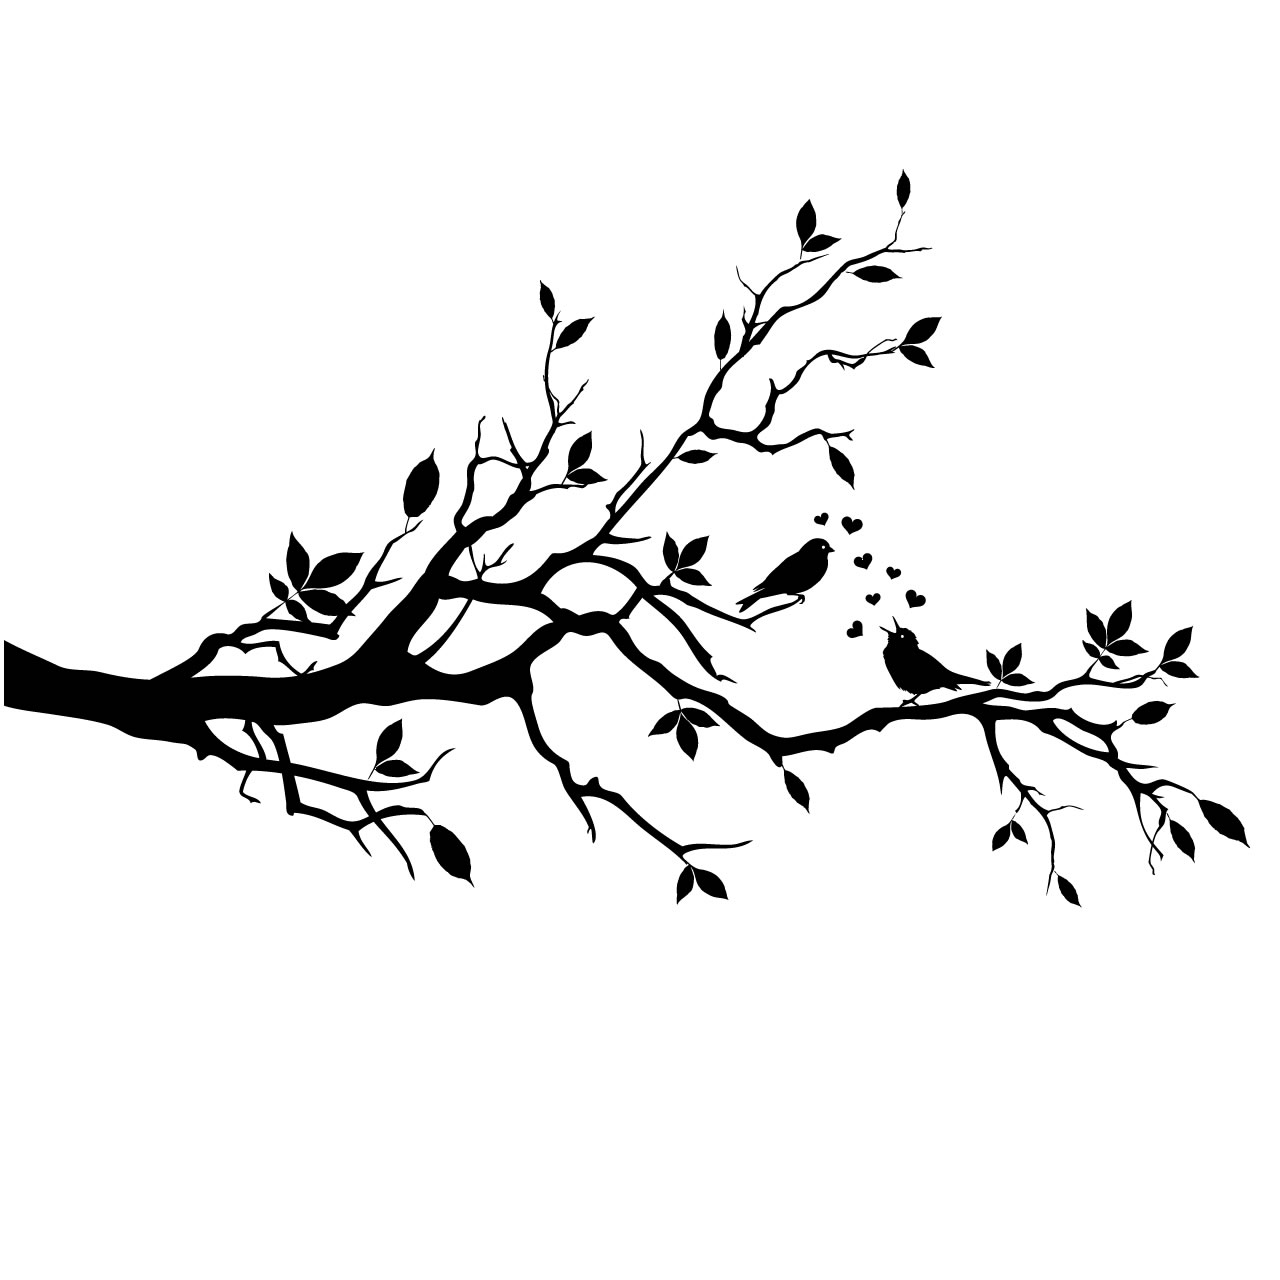 Branch clipart black and white Love Birds collection branch about